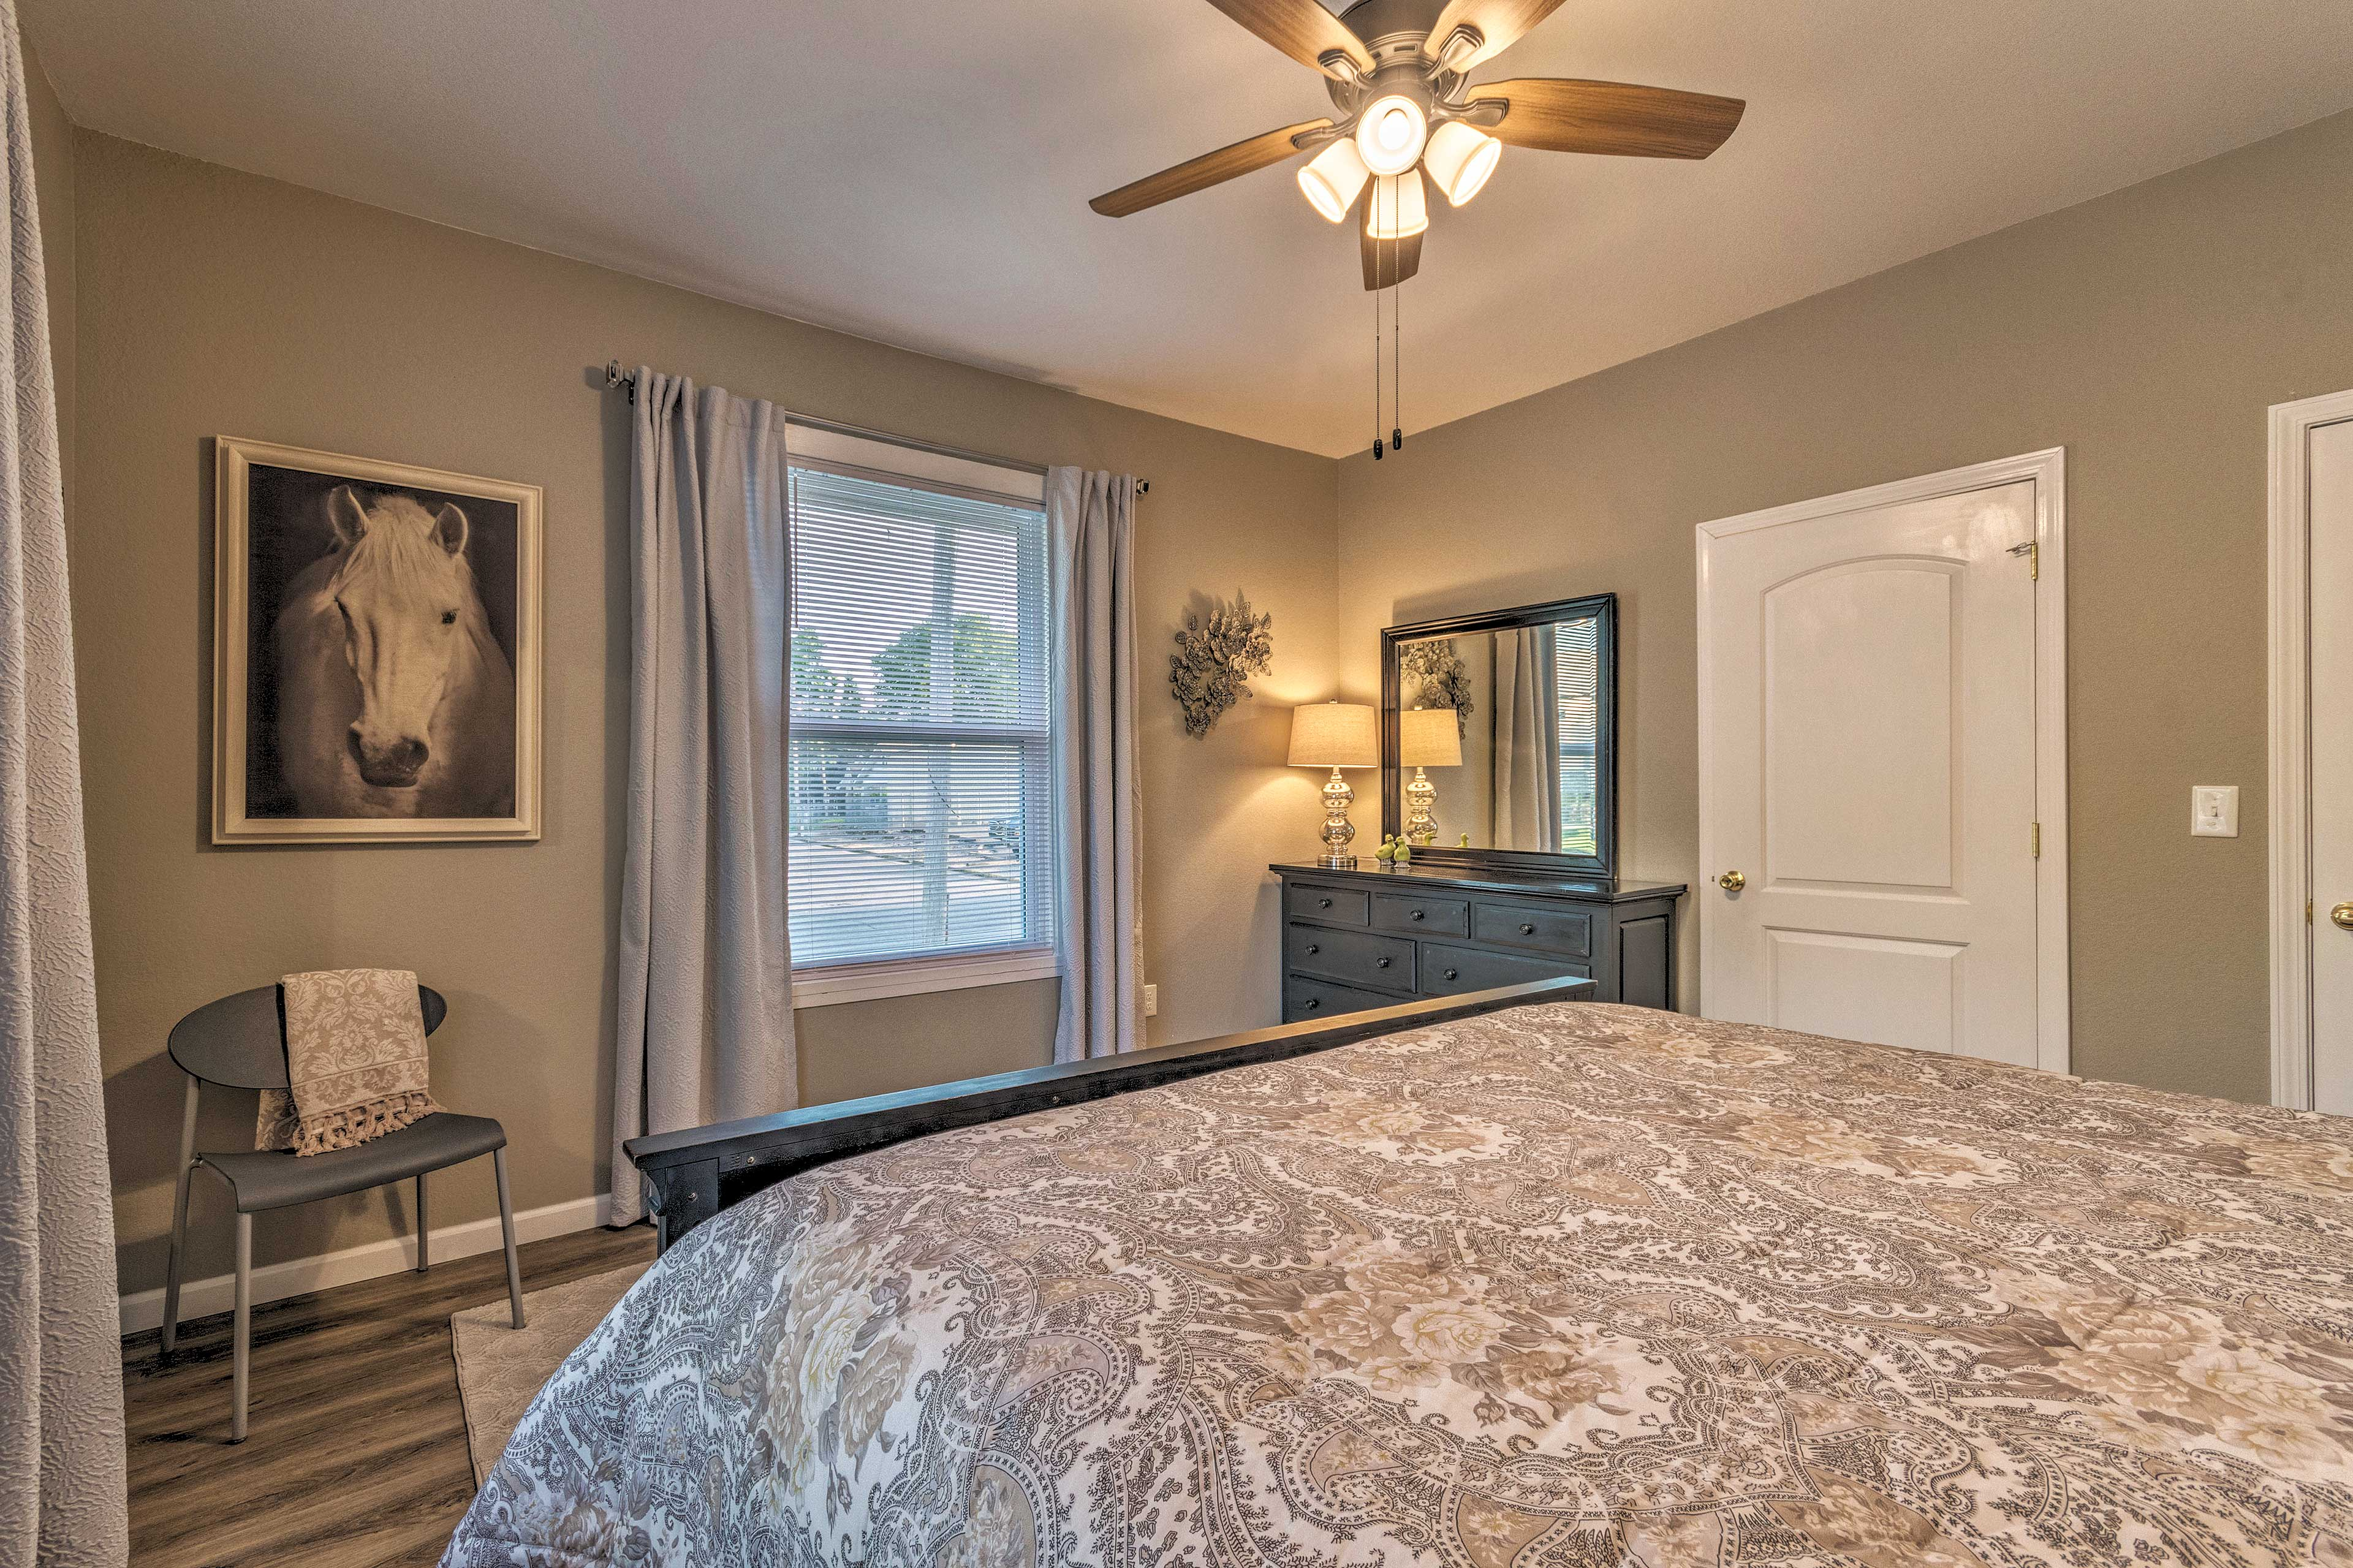 Enjoy the breeze of the ceiling fan from the king bed.